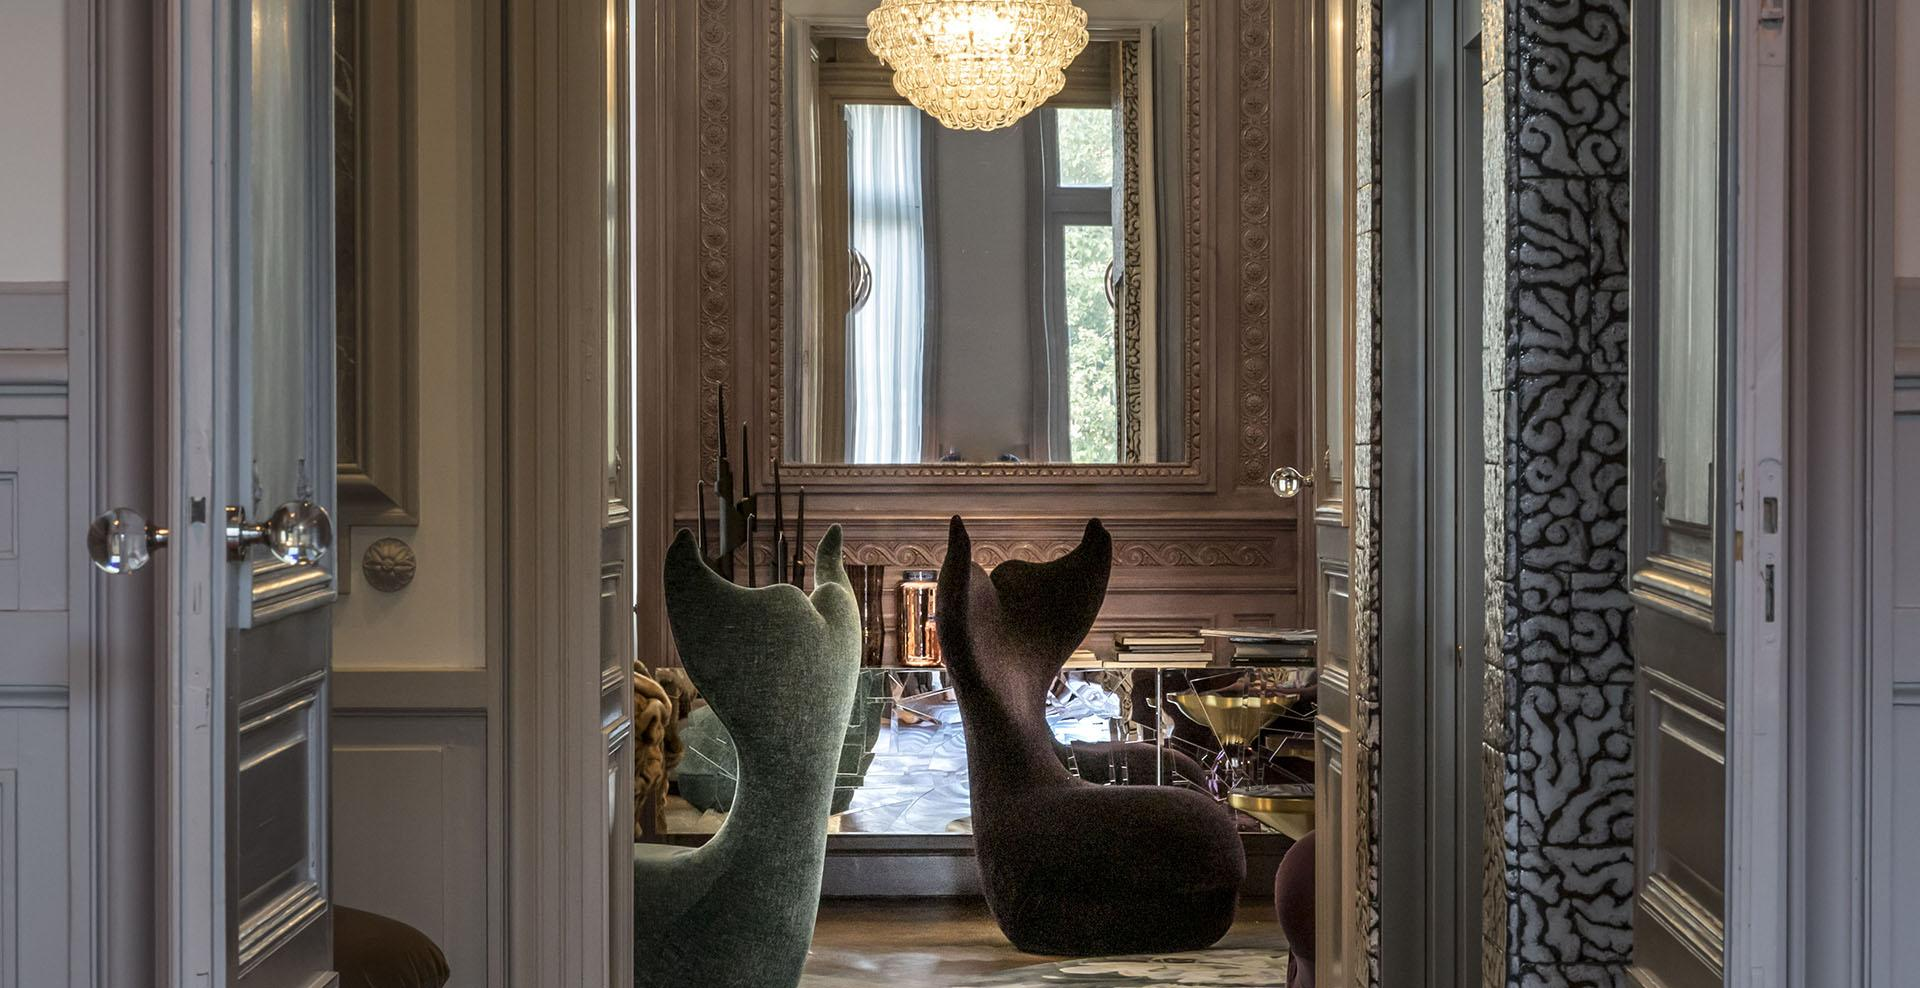 The Yndō Hotel, a discreet haven in the heart of Bordeaux